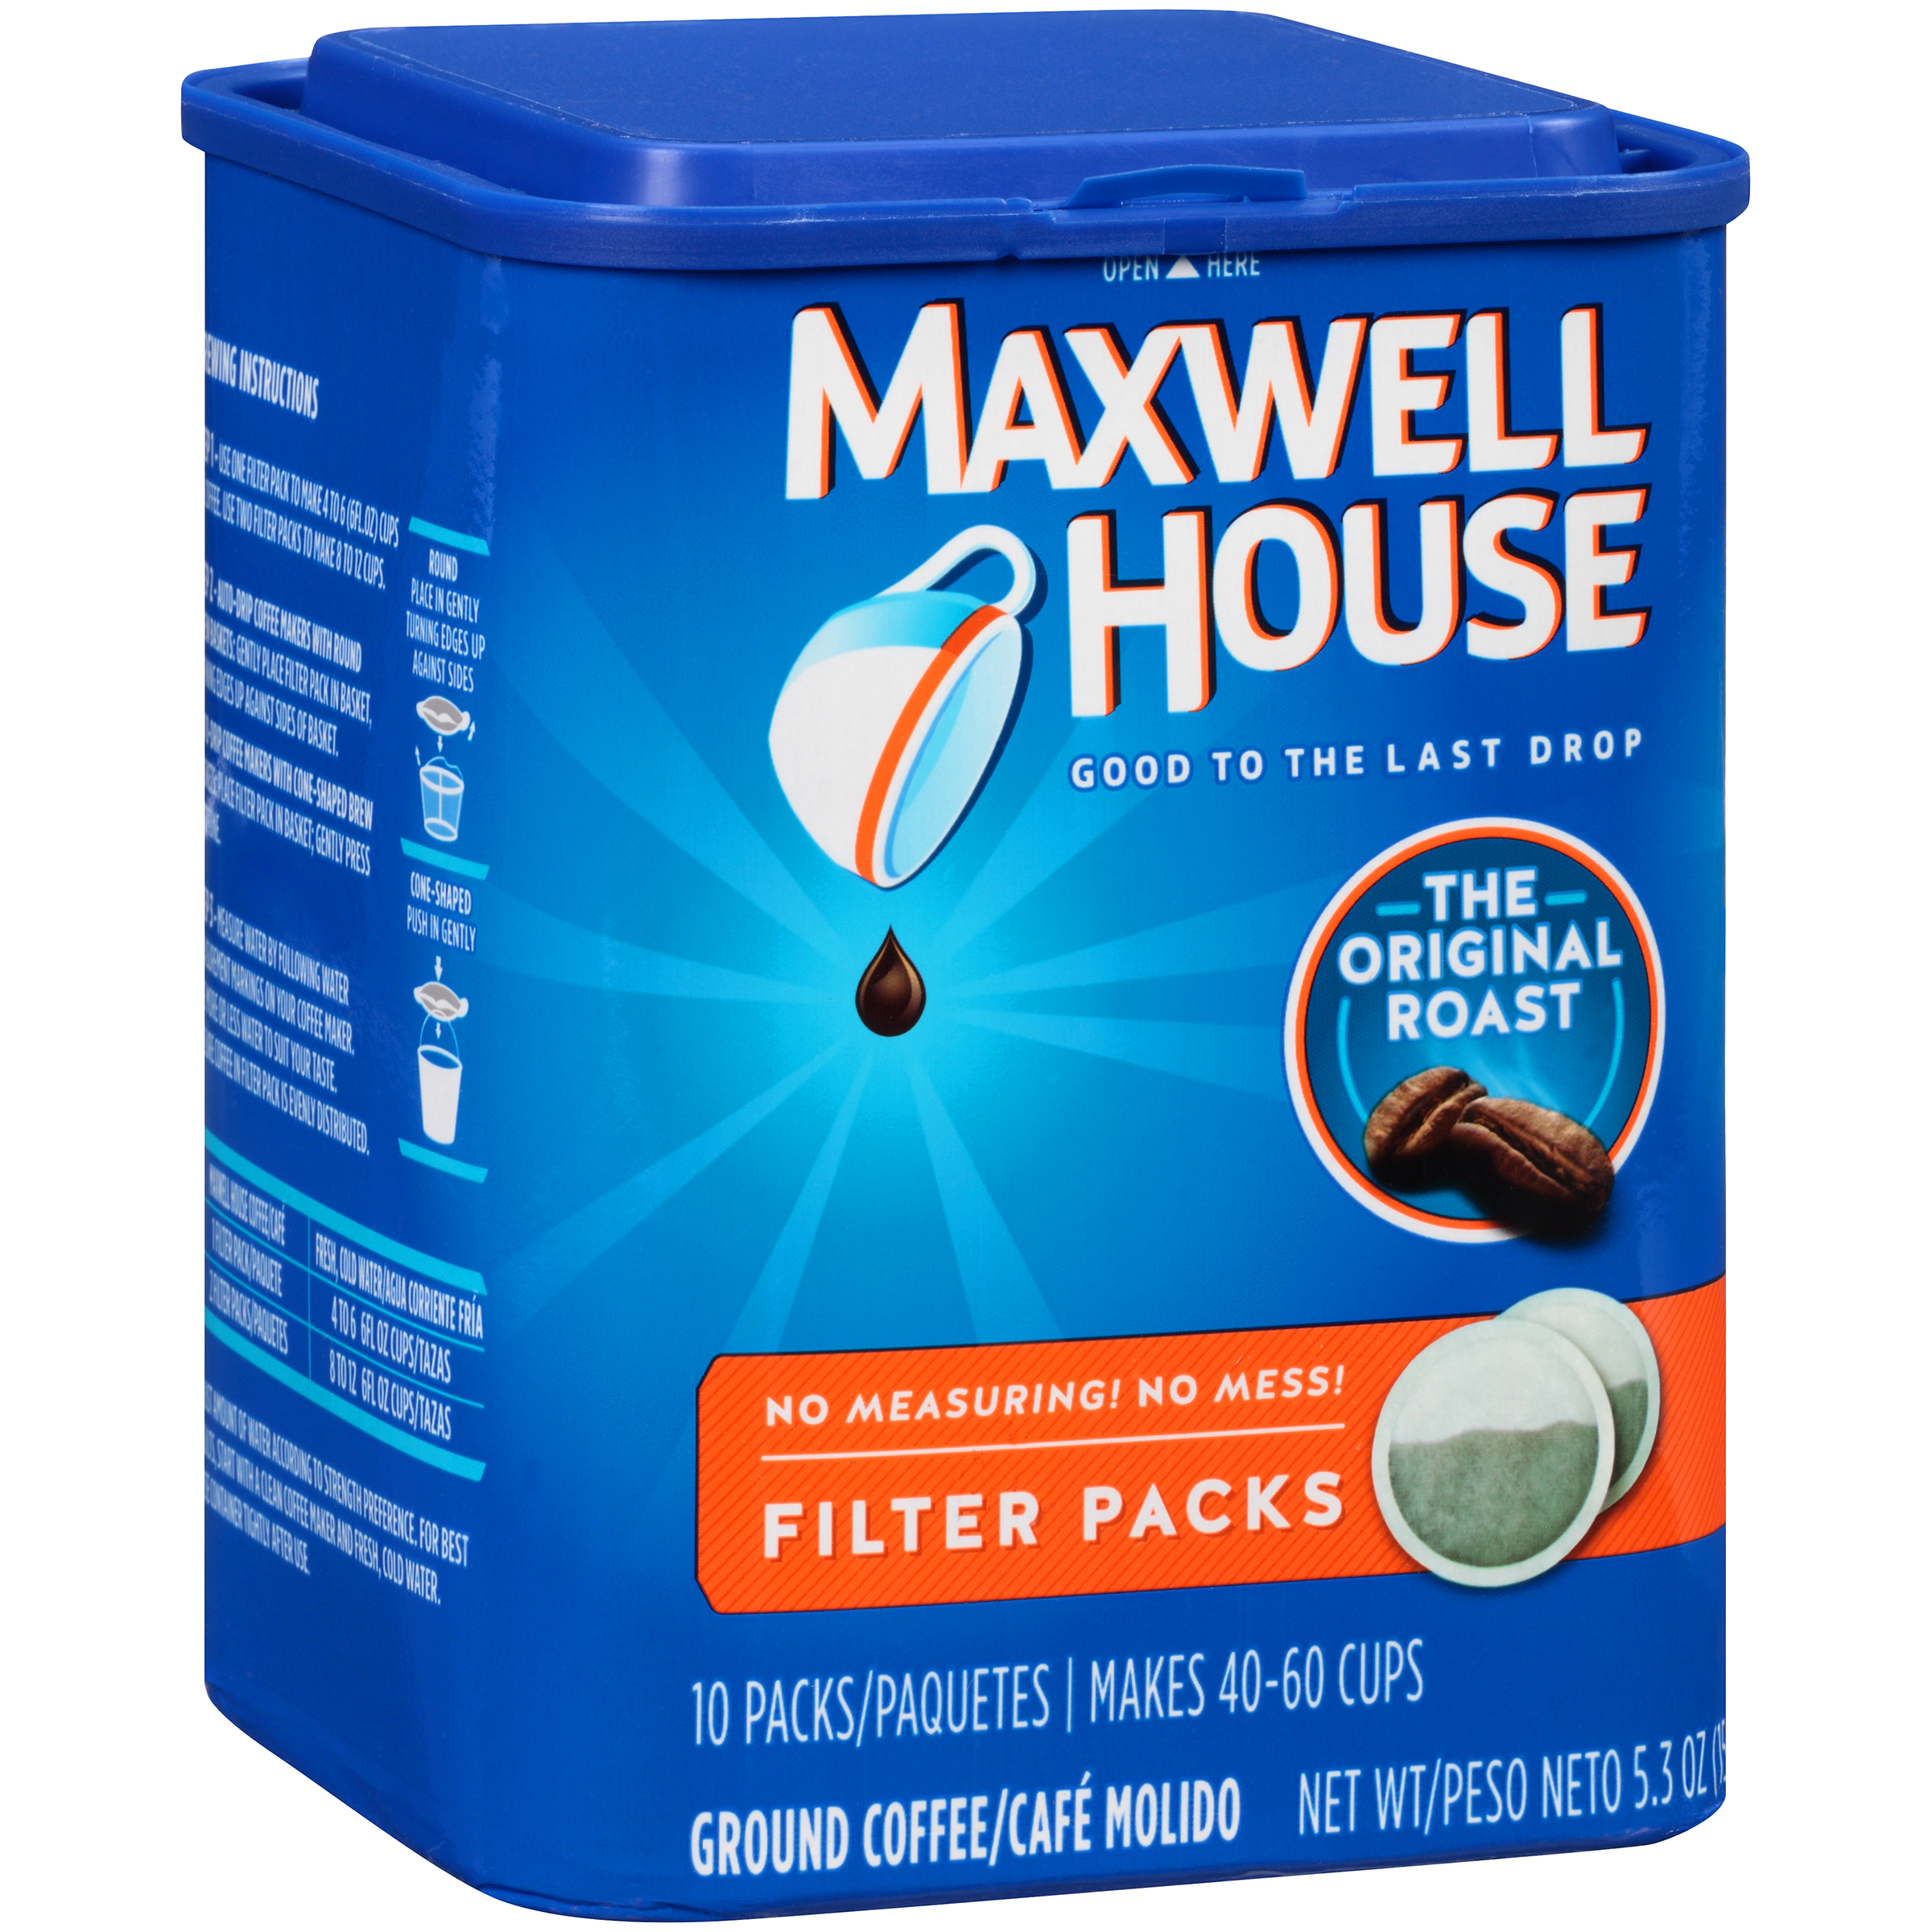 Maxwell House Original Roast Ground Coffee Filter Packs 10 ct Canister